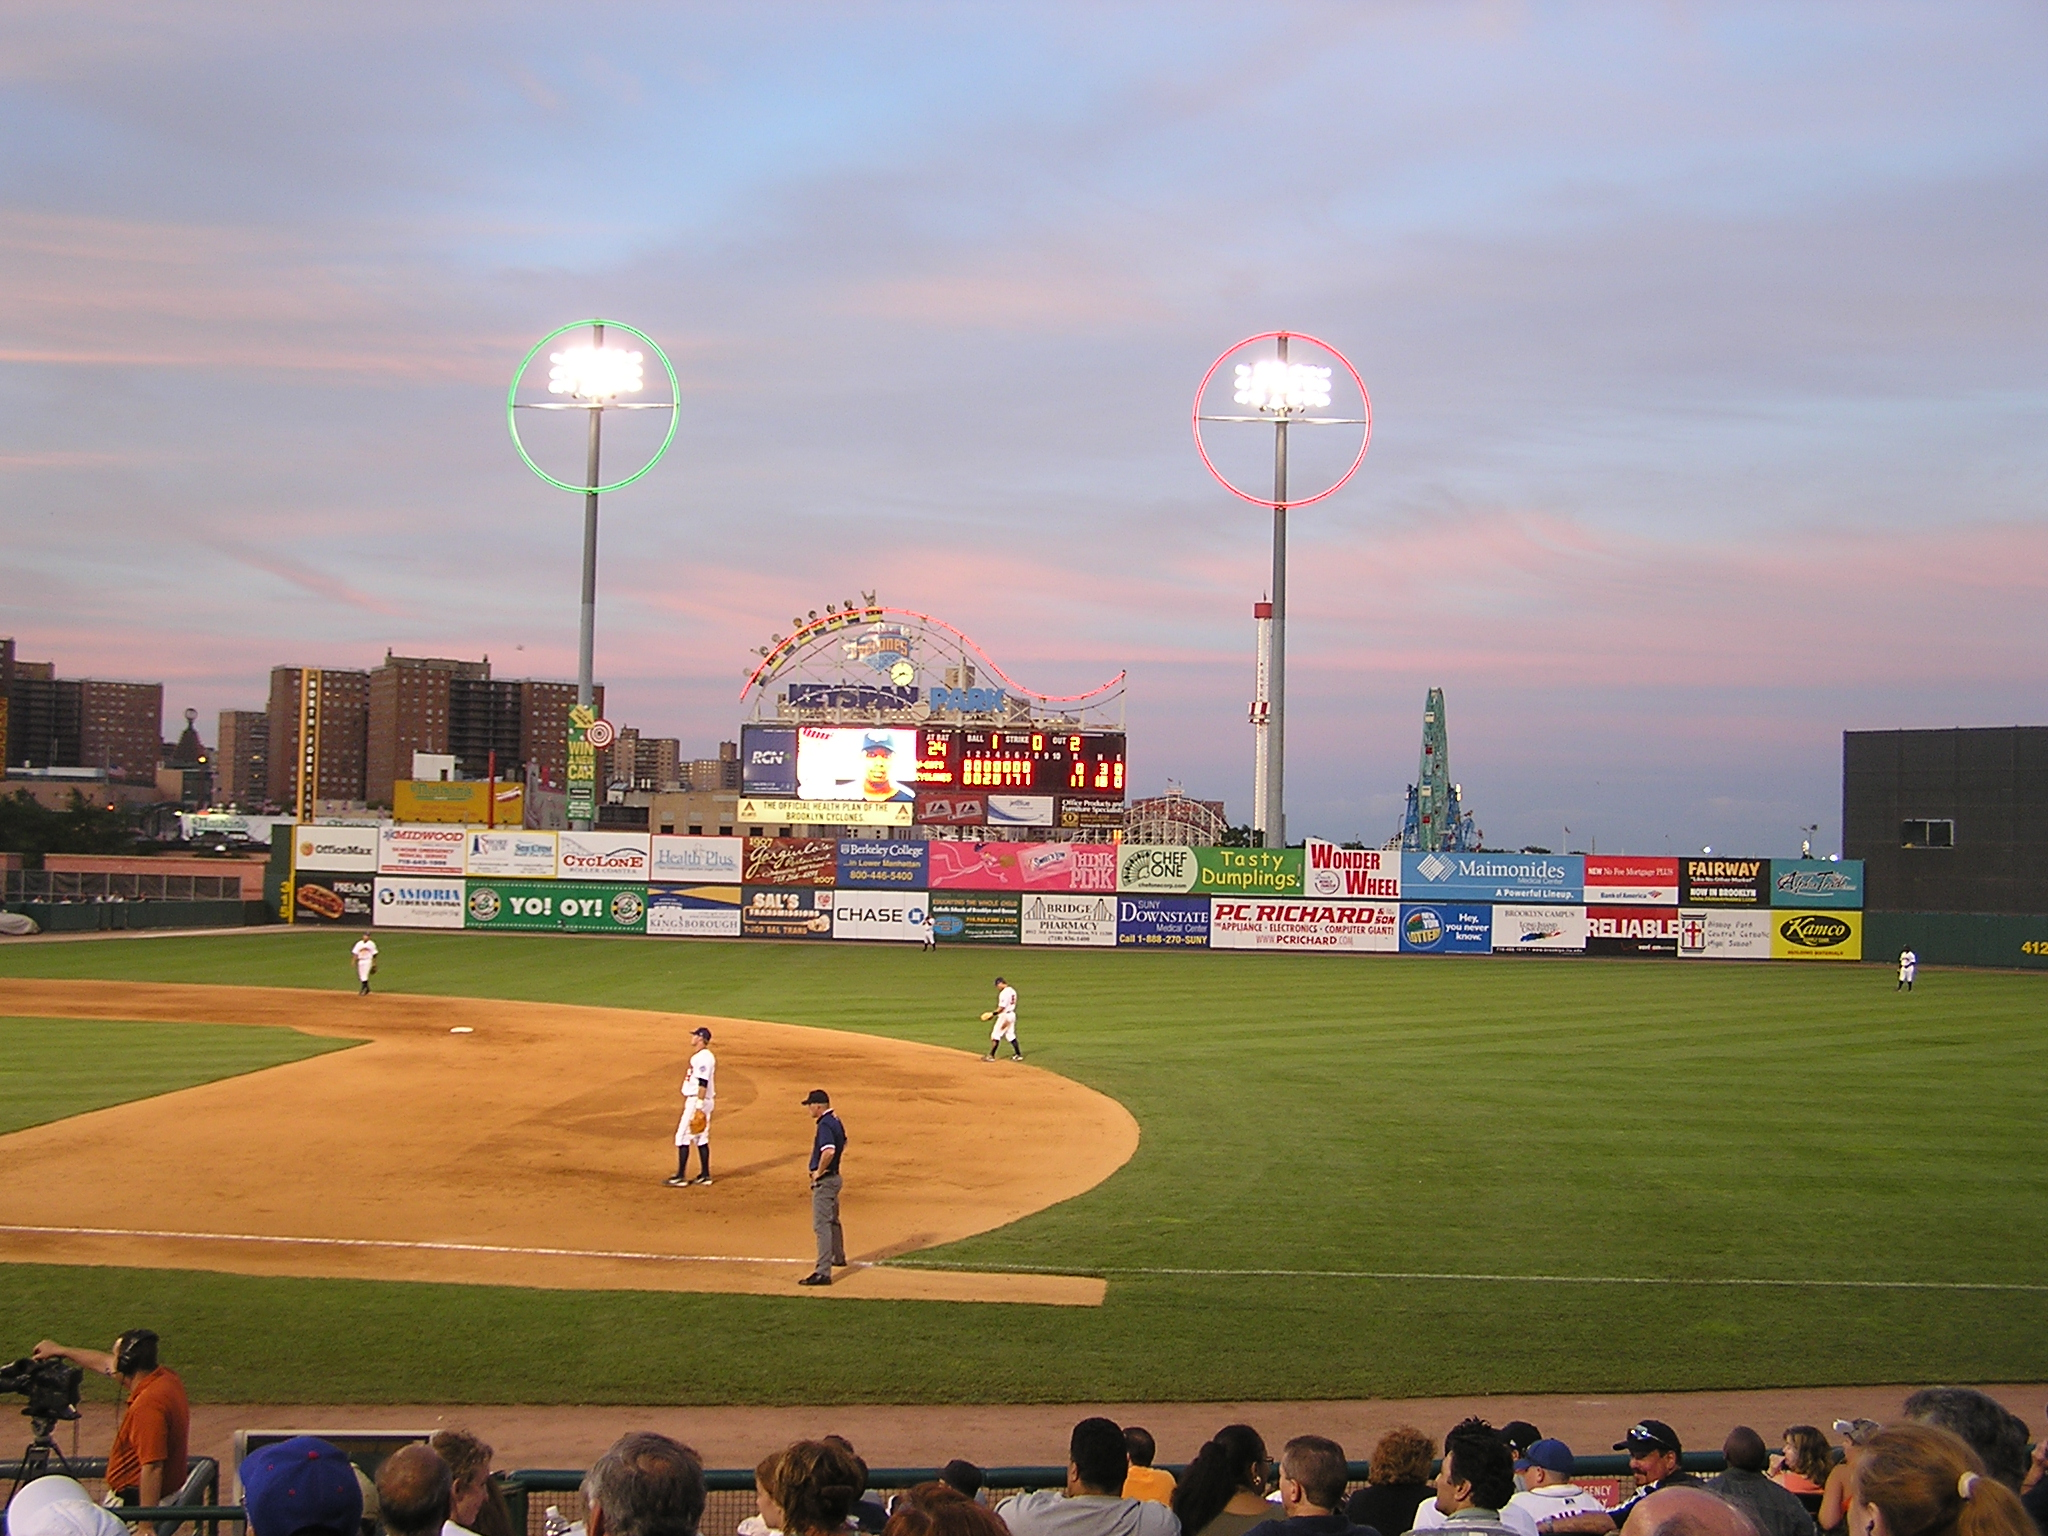 Dusk at Keyspan Park, Brooklyn NY